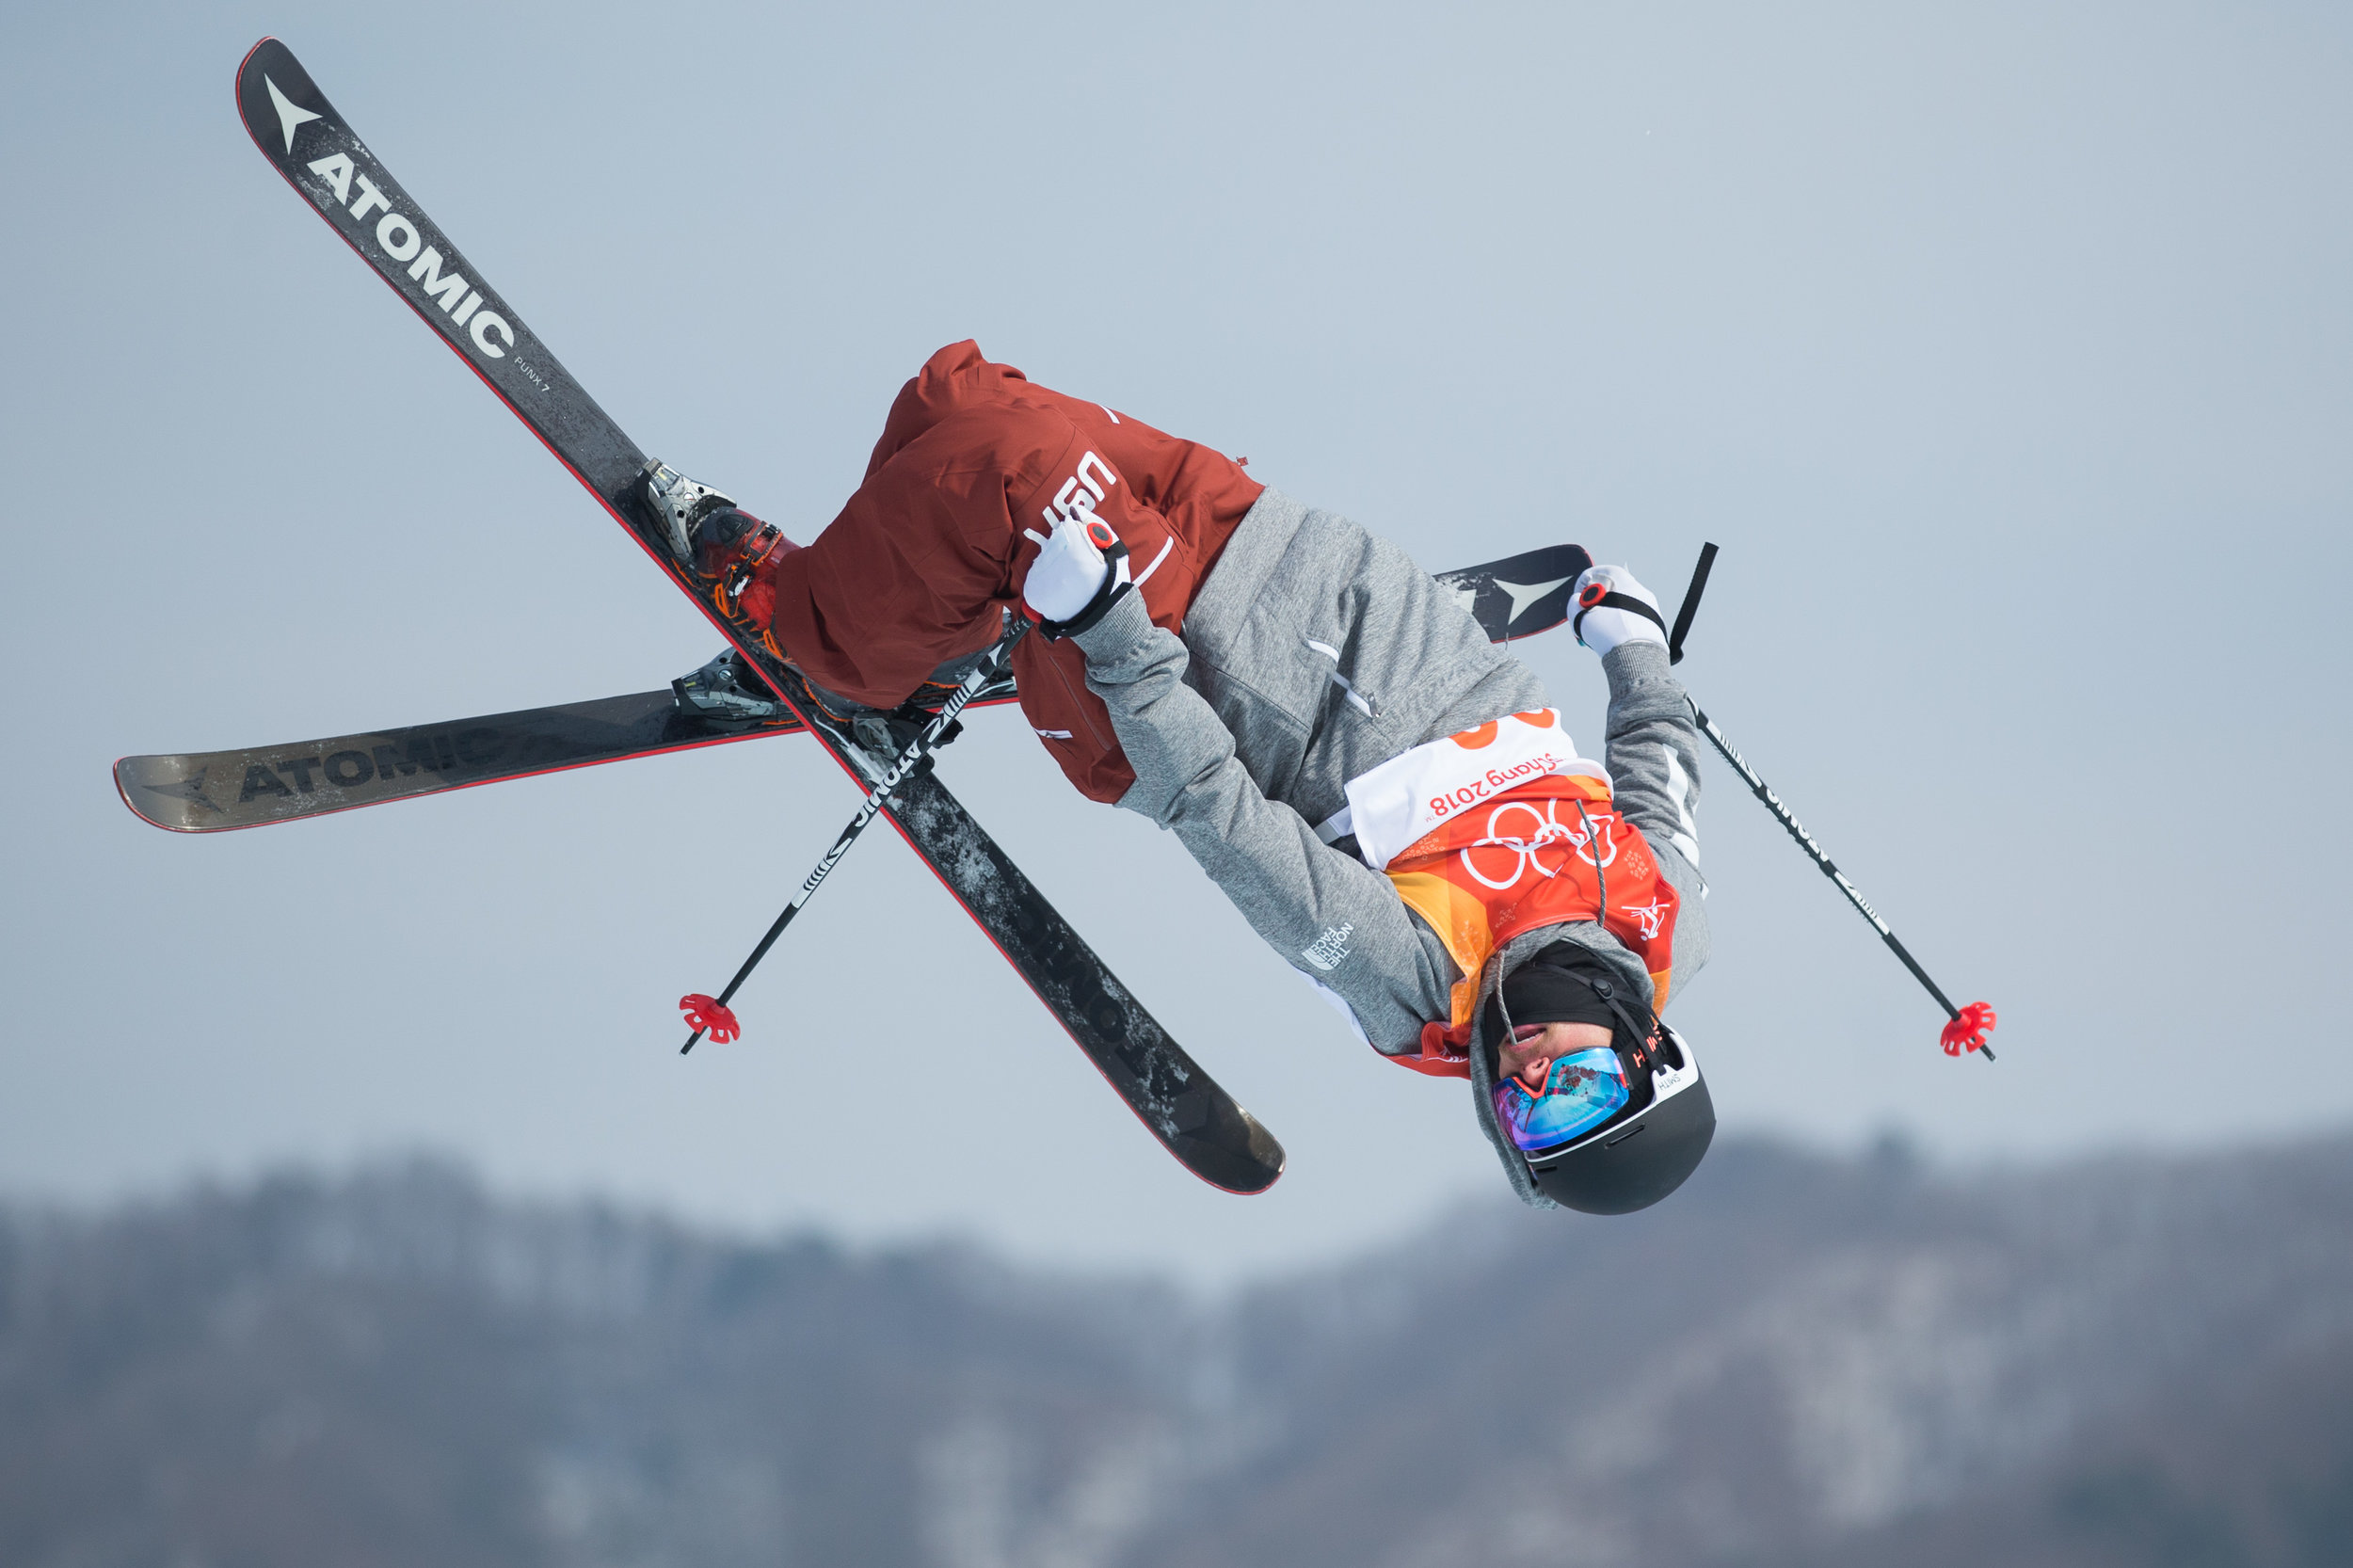 Gus Kenworthy of the United States competes in the Men's Freestyle Skiing Slopestyle final at Phoenix Snow Park in Pyeongchang, South Korea on February 18, 2018. Photo by Matthew Healey/UPI